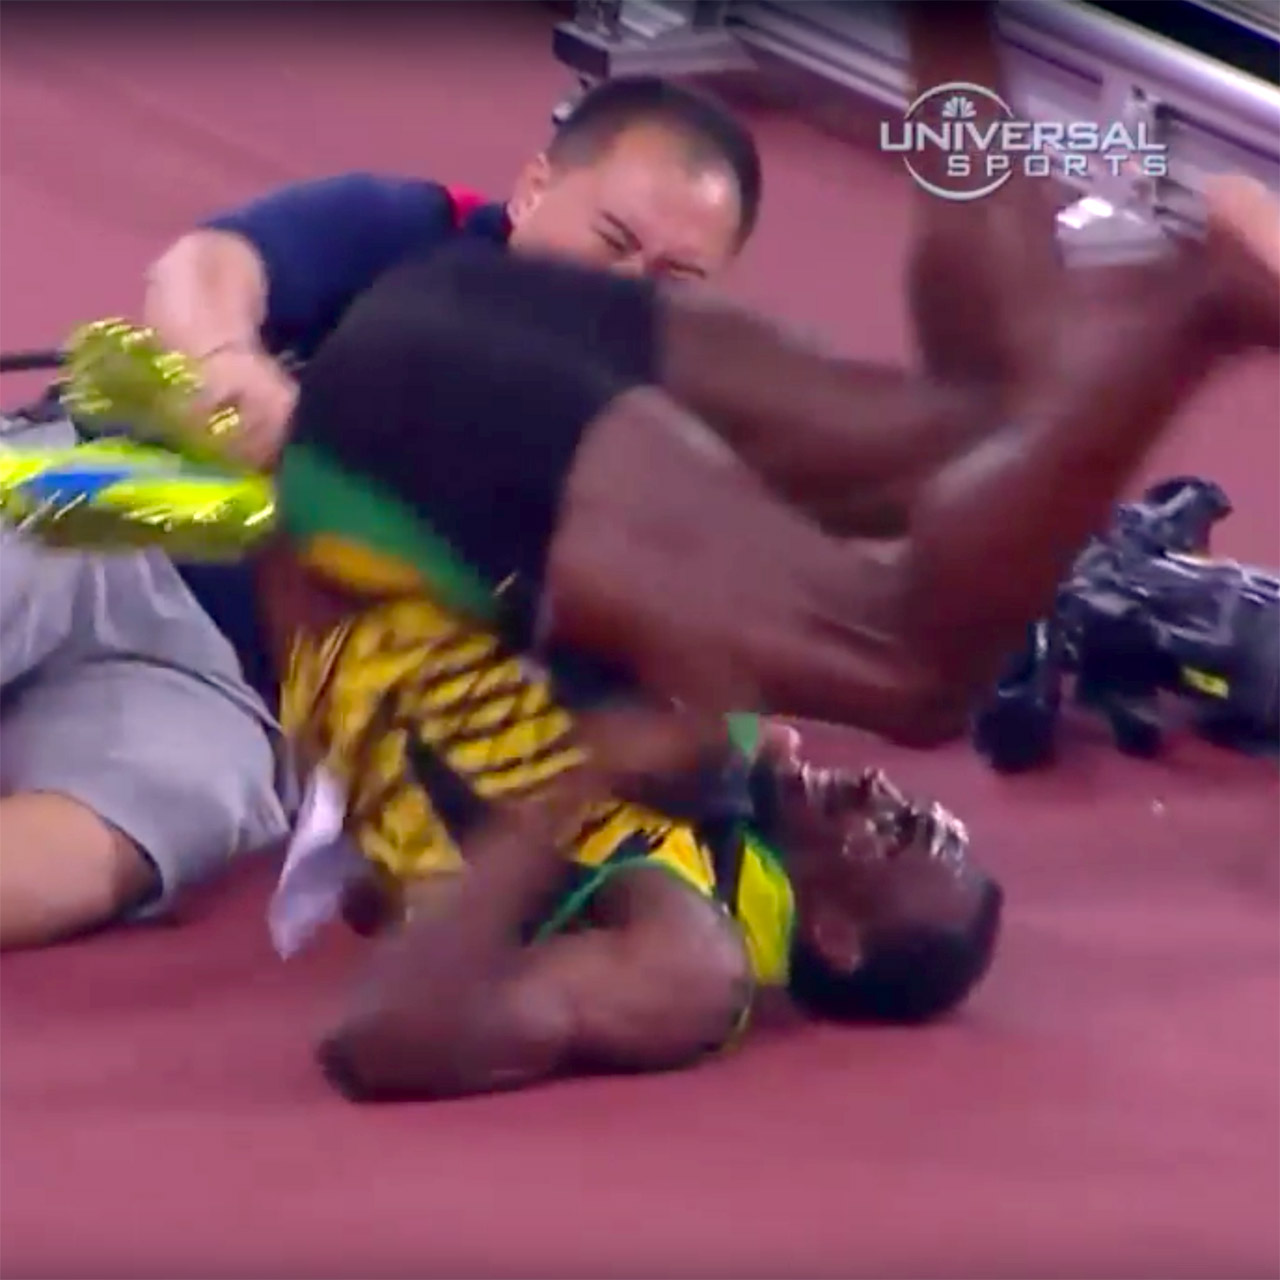 Usain Bolt taken out by cameraman's Segway